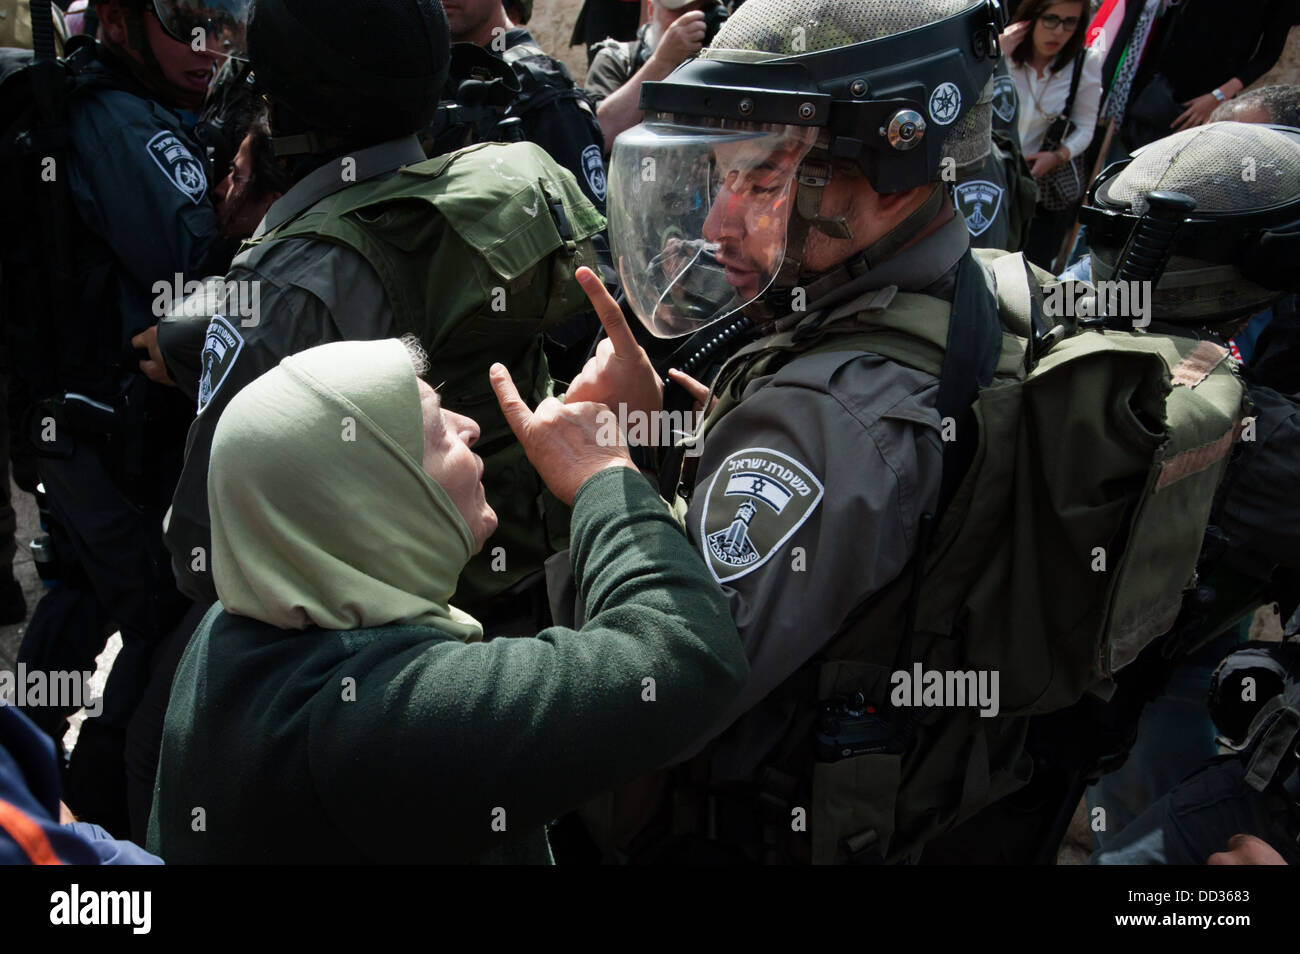 A Palestinian woman confronts Israeli police during clashes on Nakba Day at Damascus Gate. - Stock Image